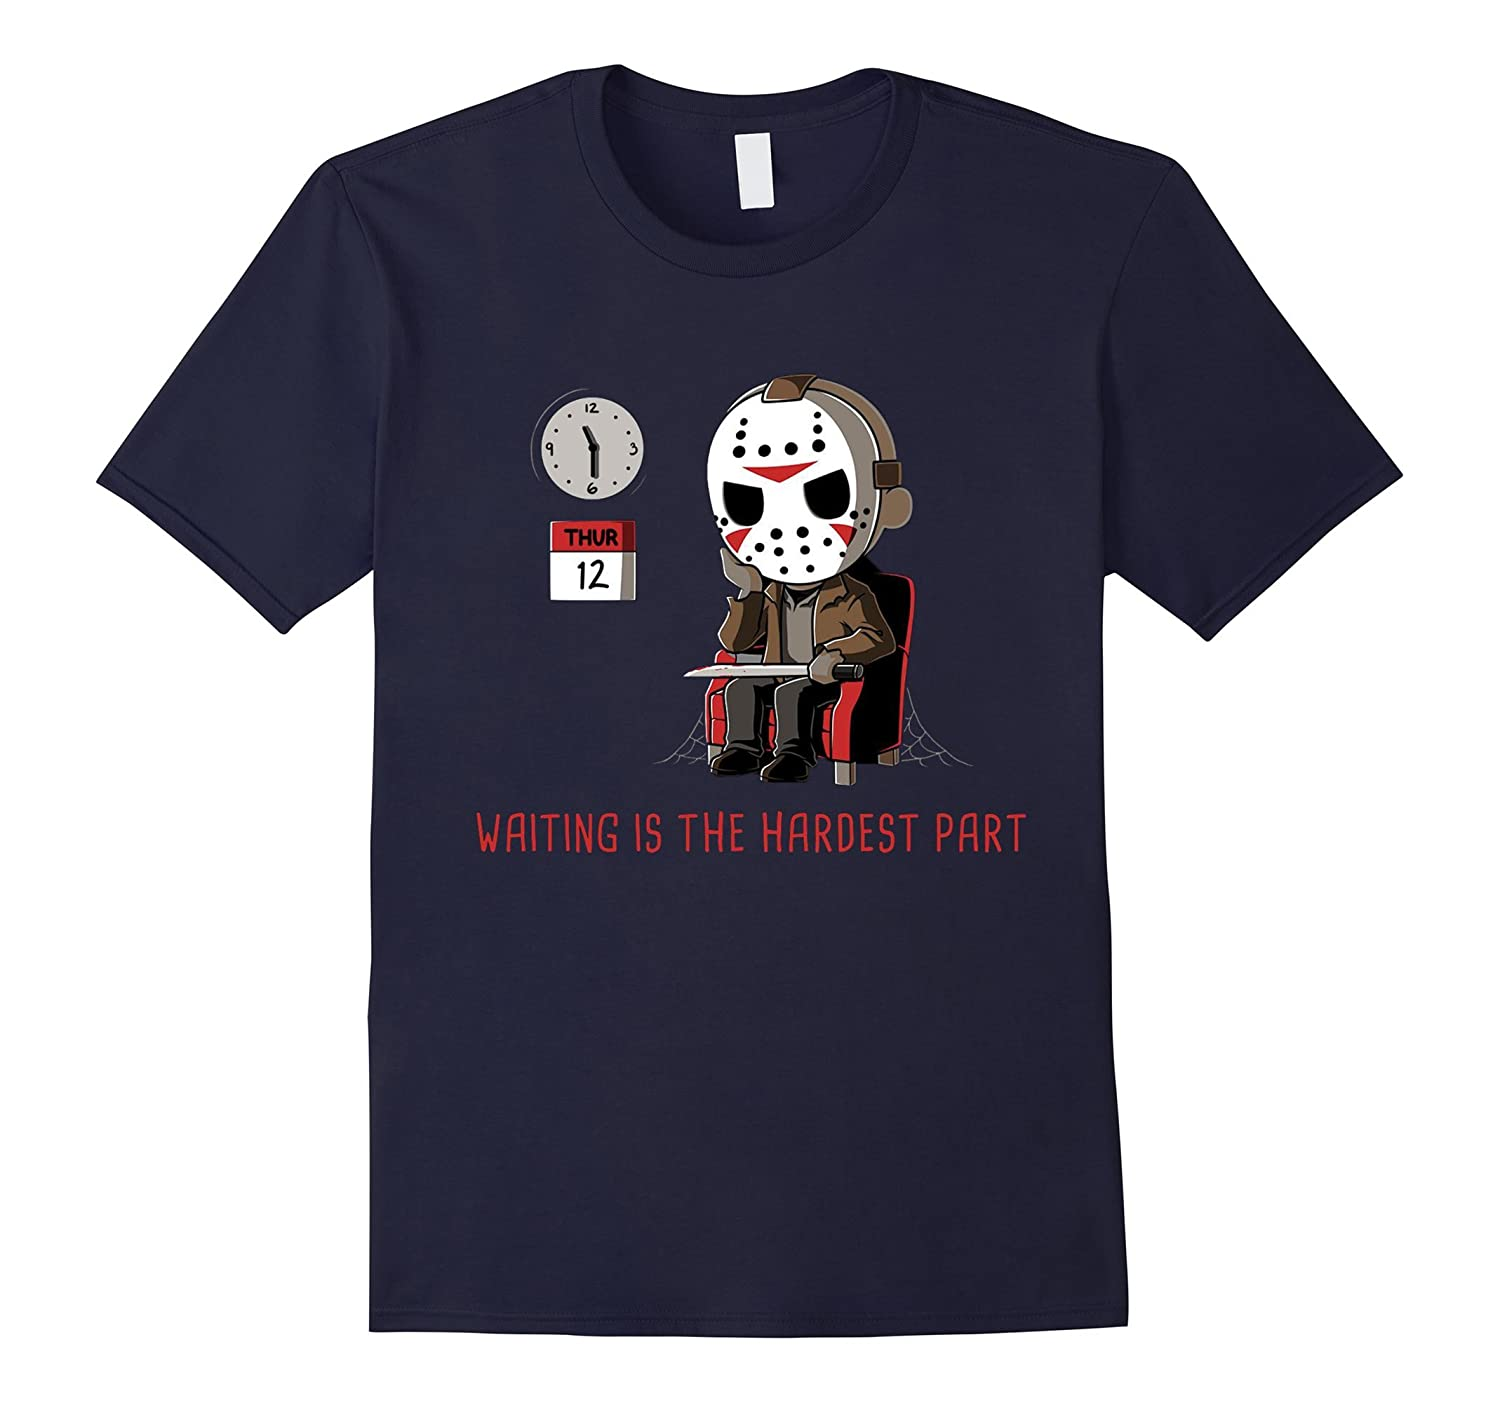 WAITING IS THE HARDEST PART - Funny T-Shirt-FL